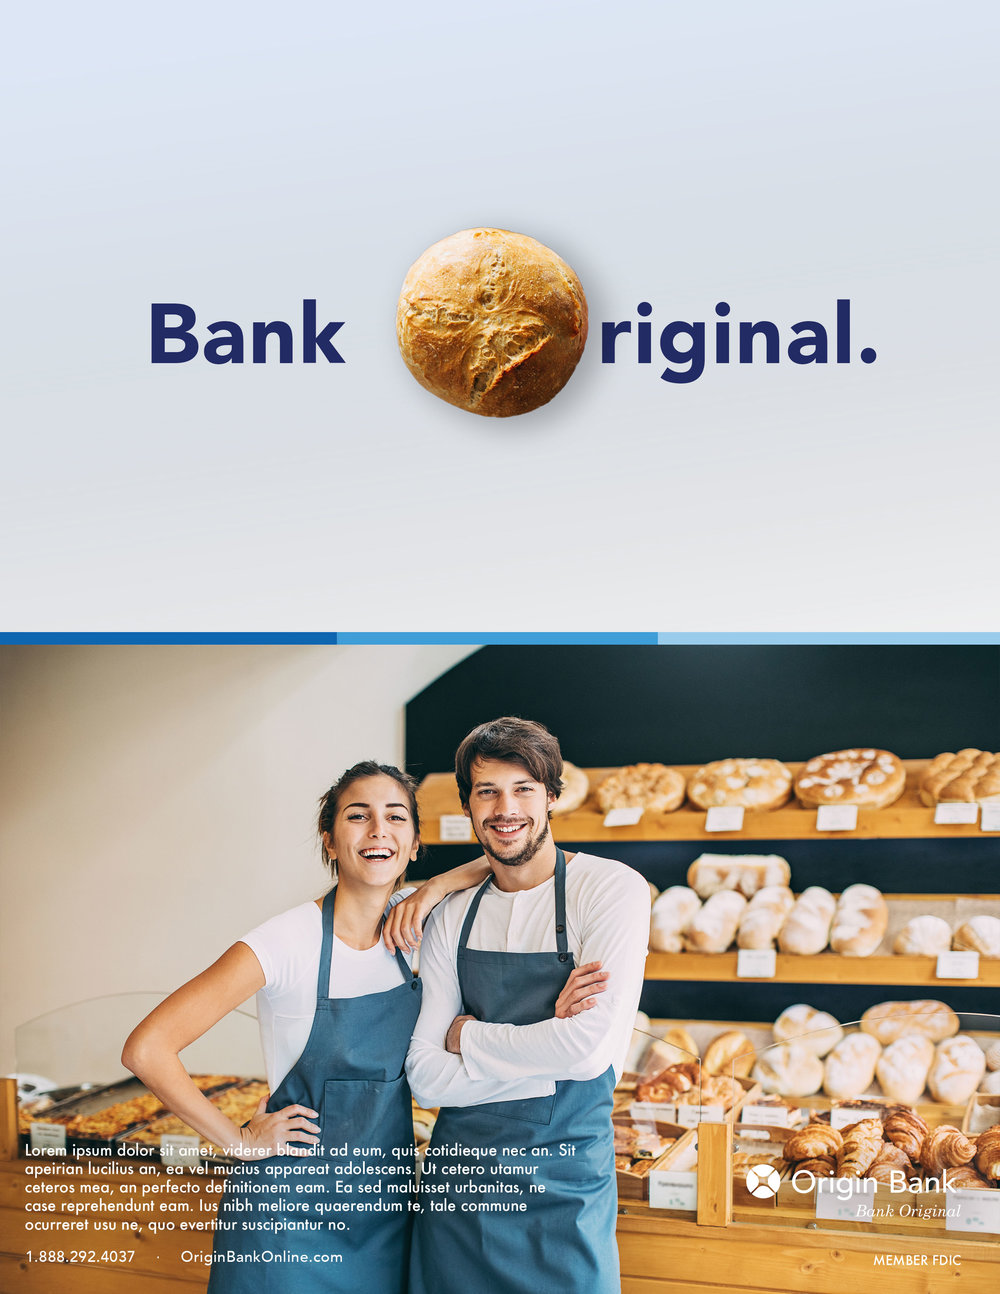 Bank_Original_Bread.jpg